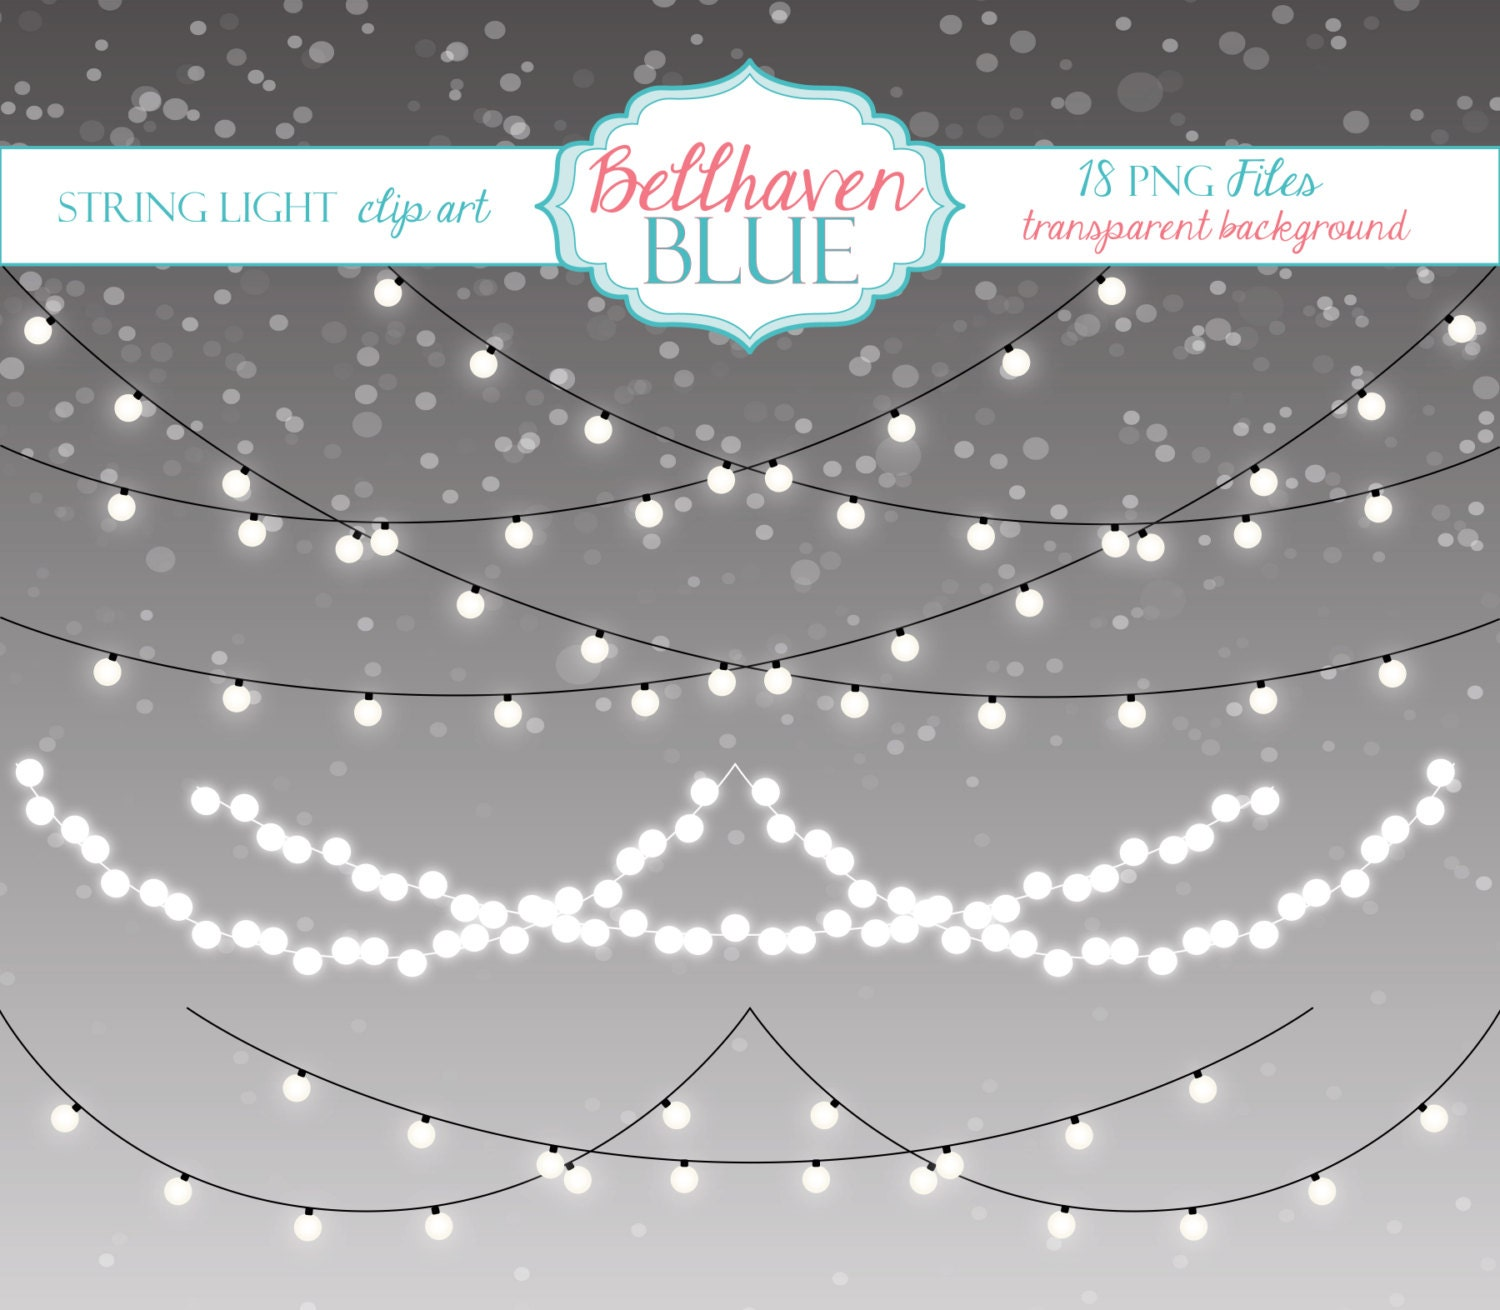 String Of Xmas Lights Clipart: String Light Clip Art By BellhavenBlue On Etsy